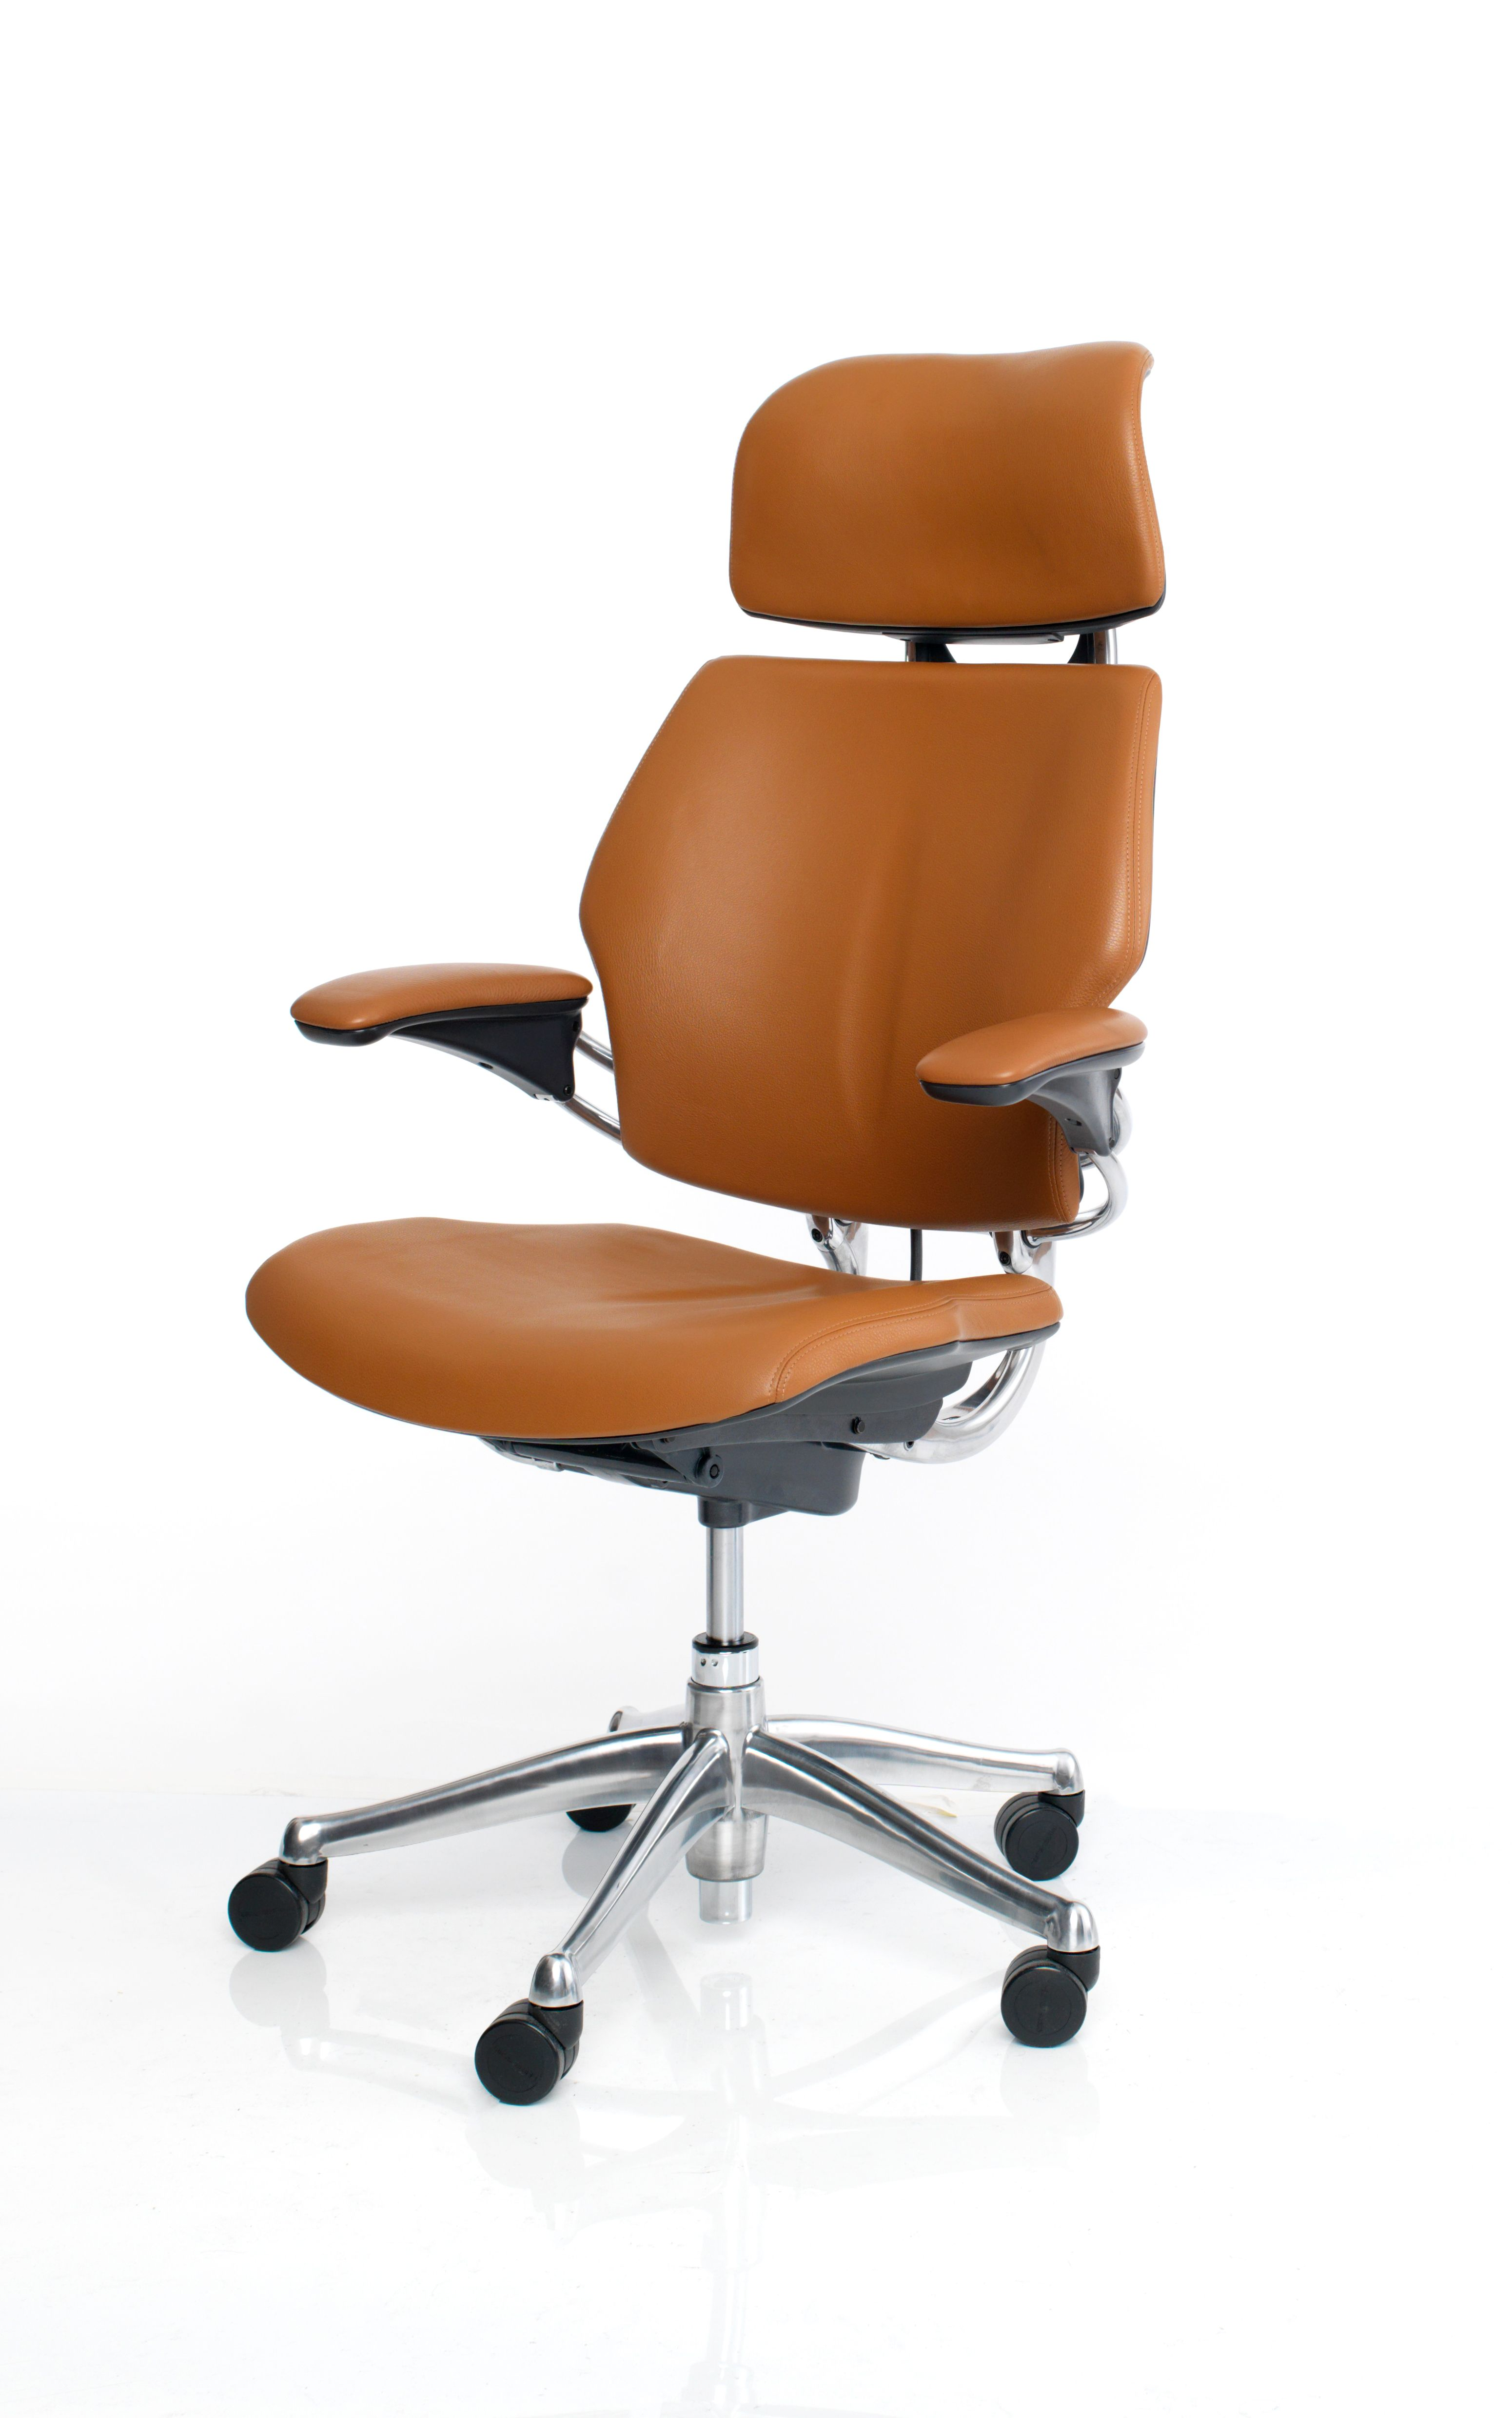 Freedom Headrest Chair Humanscale Niels Diffrient Office